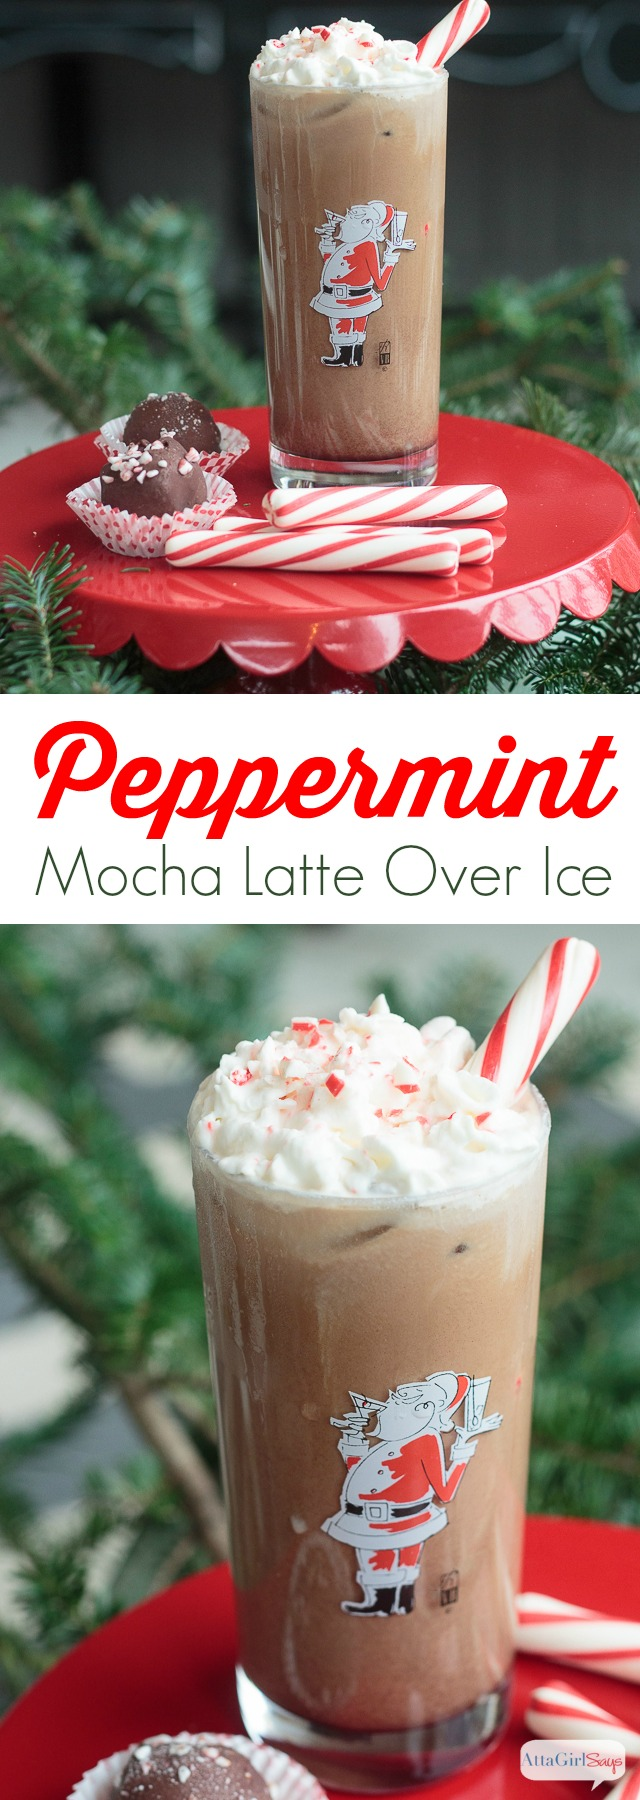 Don't pour out that pot of lukewarm coffee. Save it and try this deliciously simple iced peppermint mocha recipe. It's the perfect latte for the holidays. #ad #ShareYourDelight #indelight